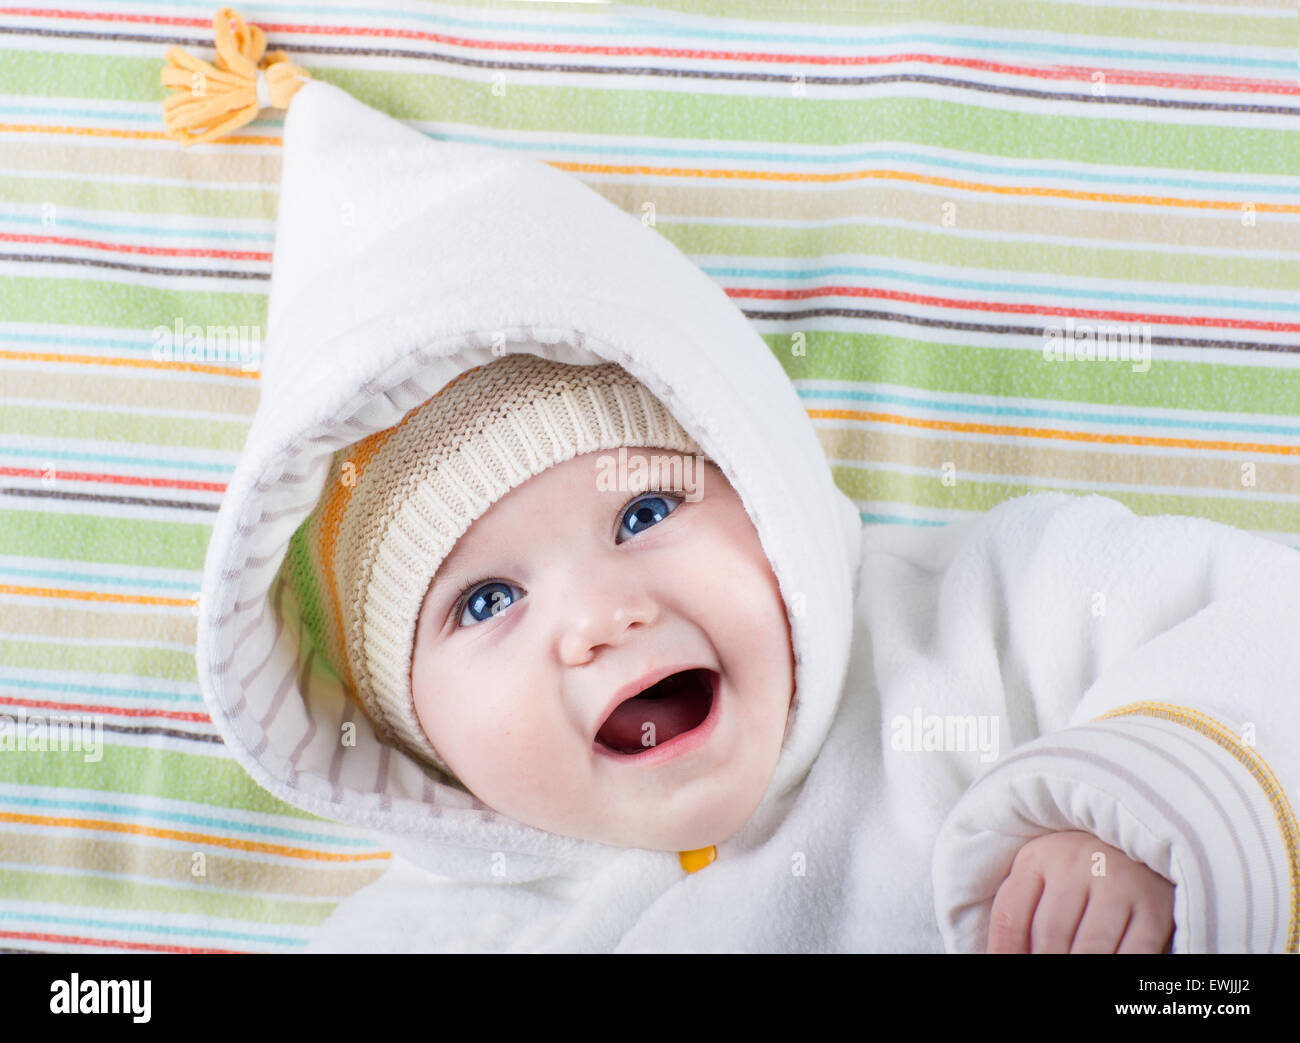 e584915e3 Cute funny laughing baby girl relaxing on a colorful blanket wearing ...